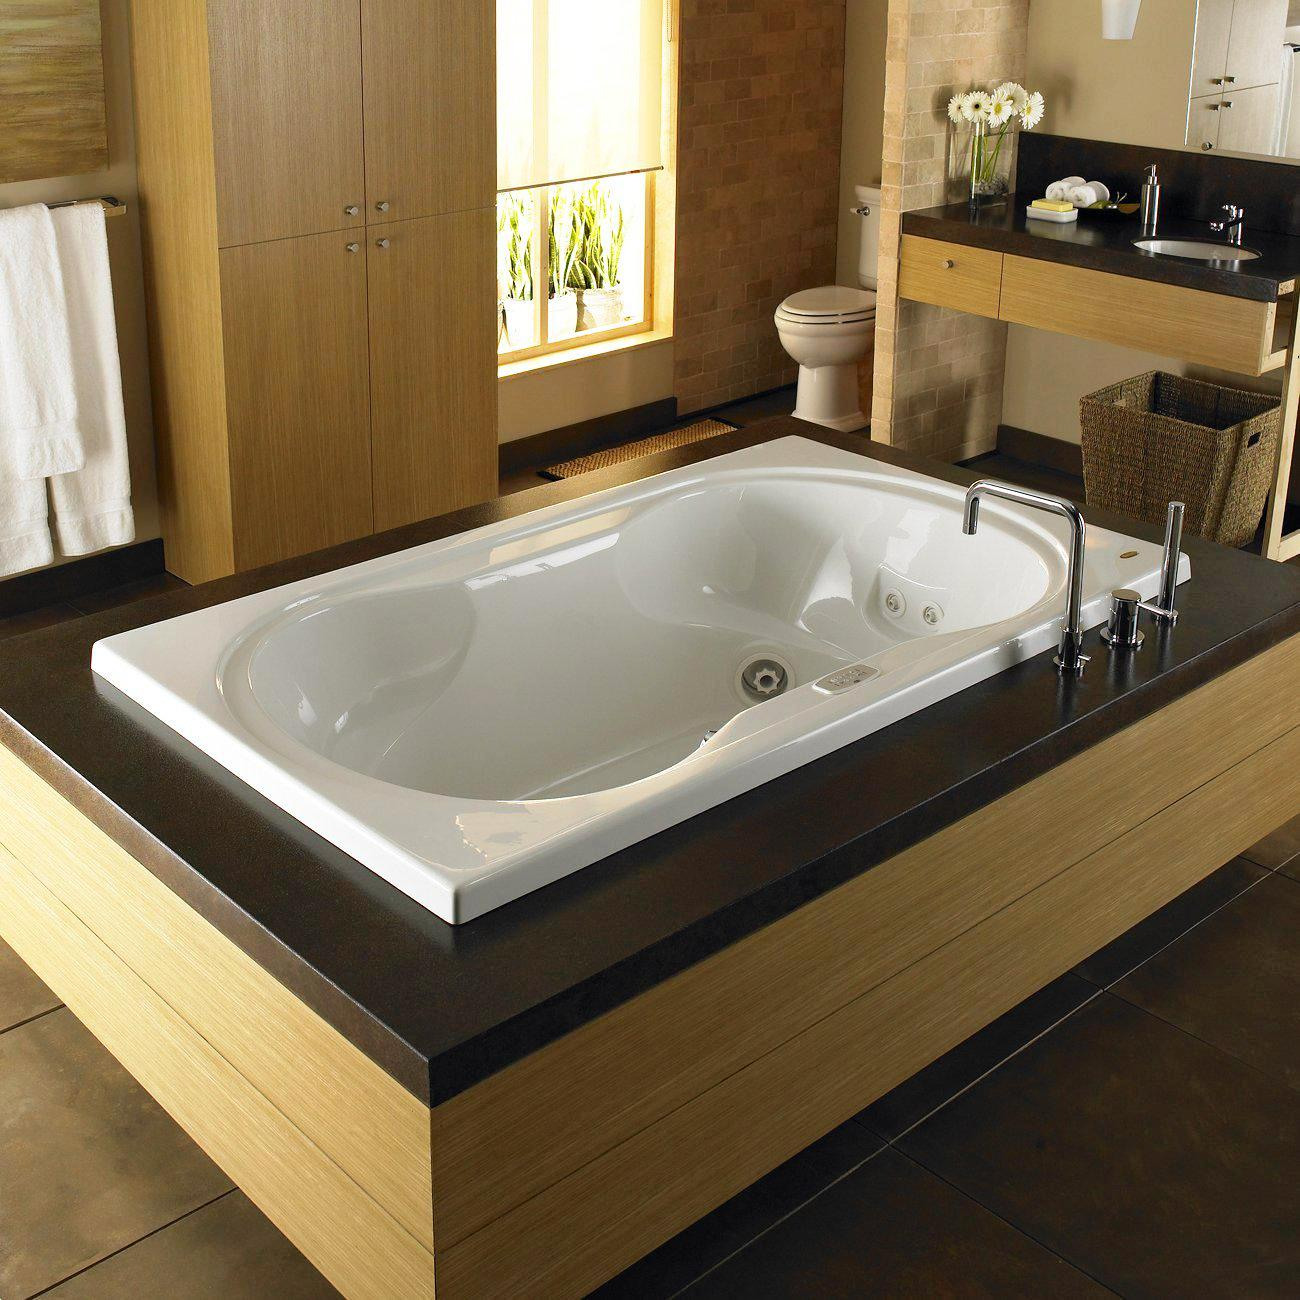 Whirlpool Tub Shower Combo Schmidt Gallery Design